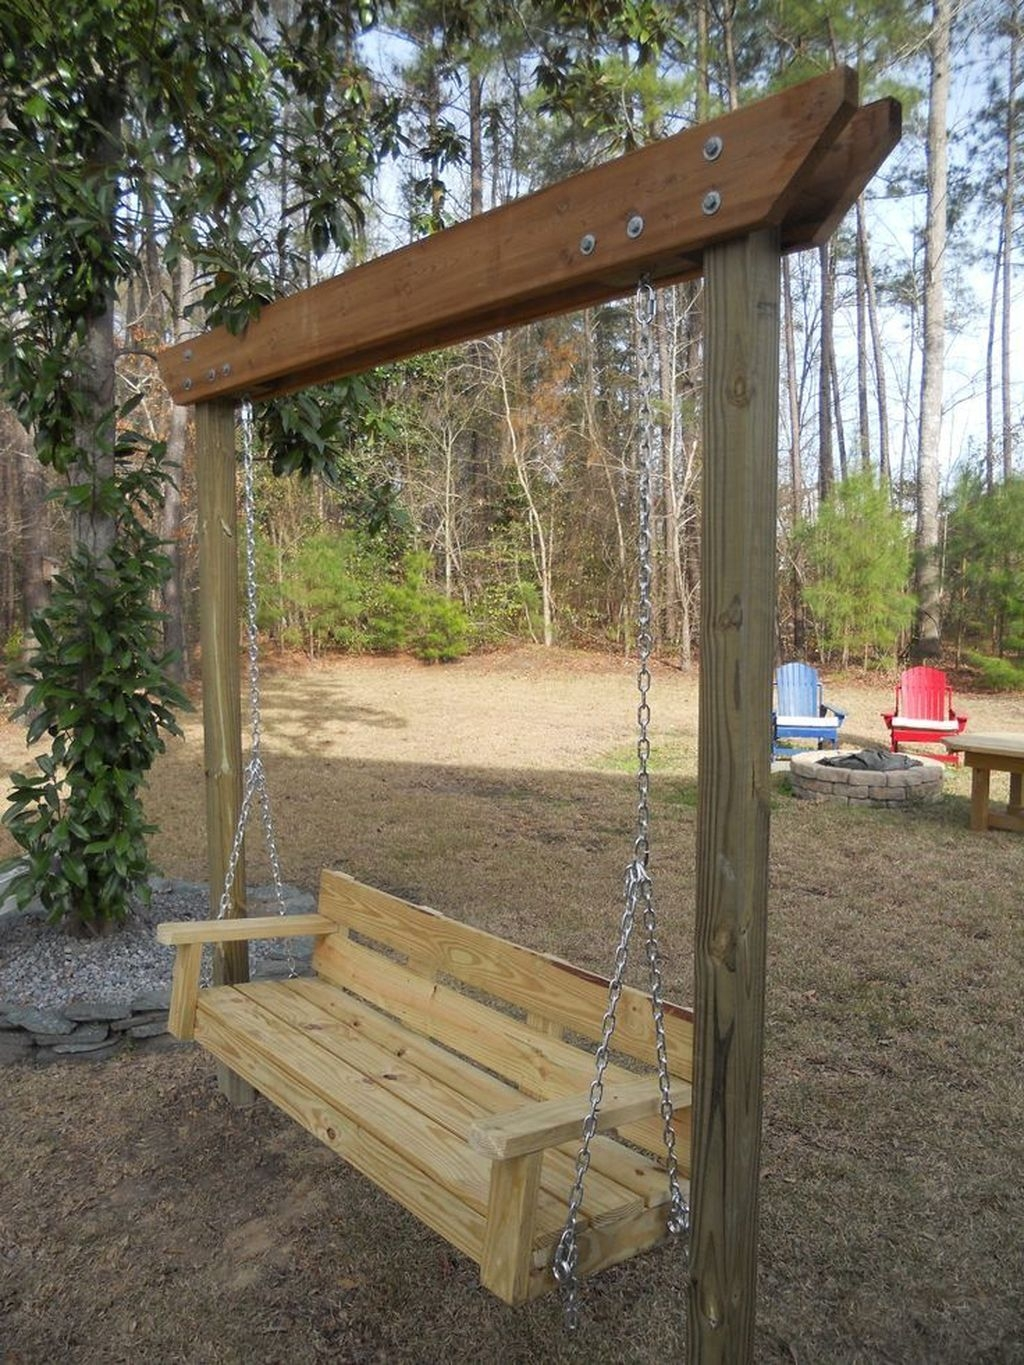 Fascinating One Day Backyard Project Ideas For Outdoor Space14